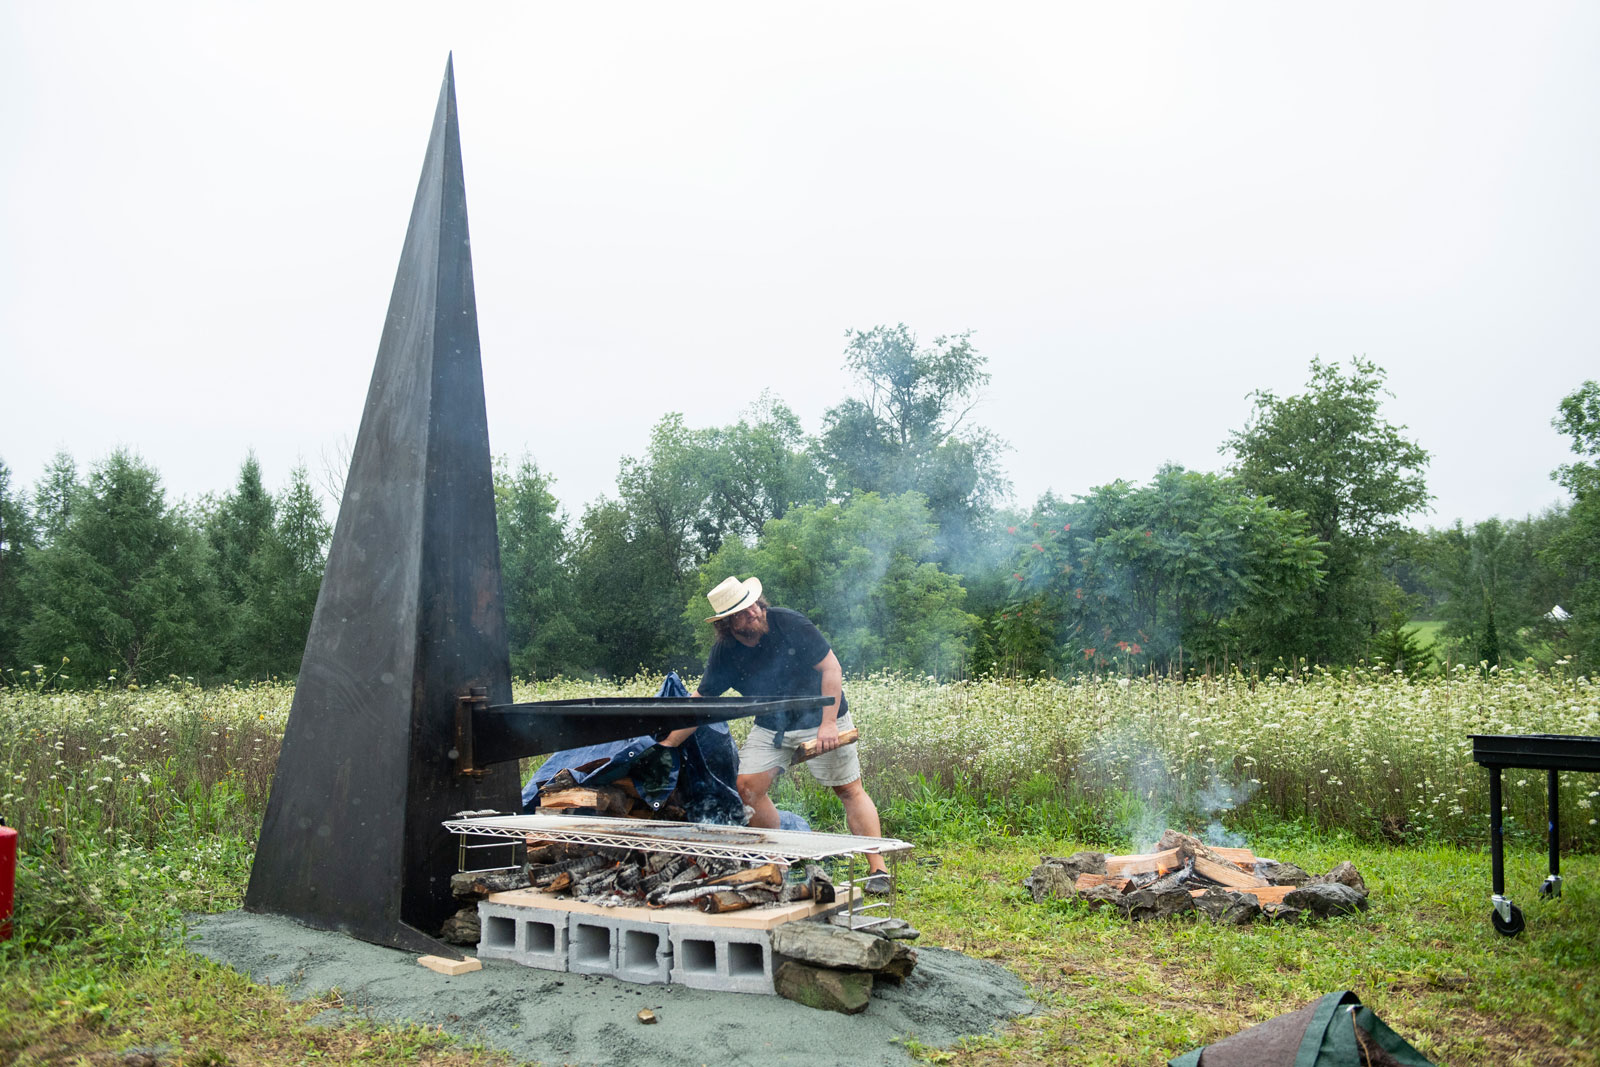 Play with Fire grilling sculptures